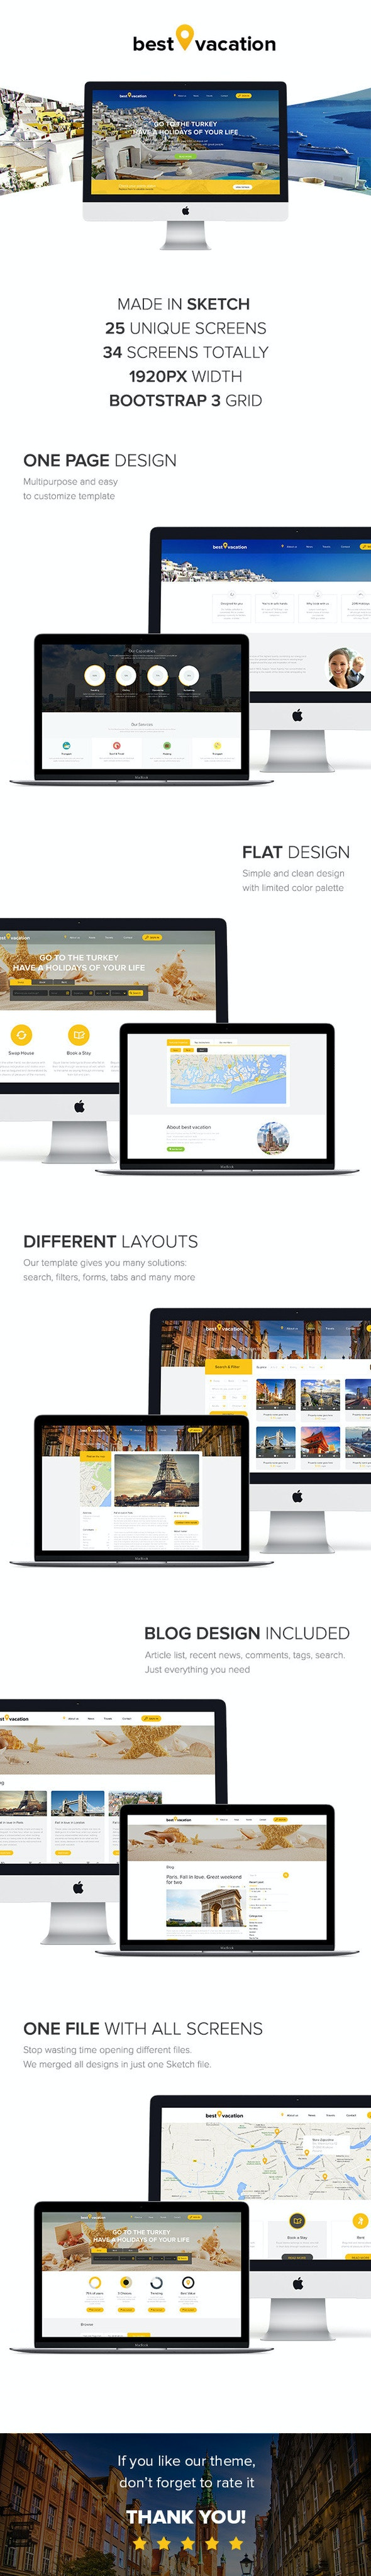 Best Vacation - Holiday Web Sketch Template - Sketch UI Templates